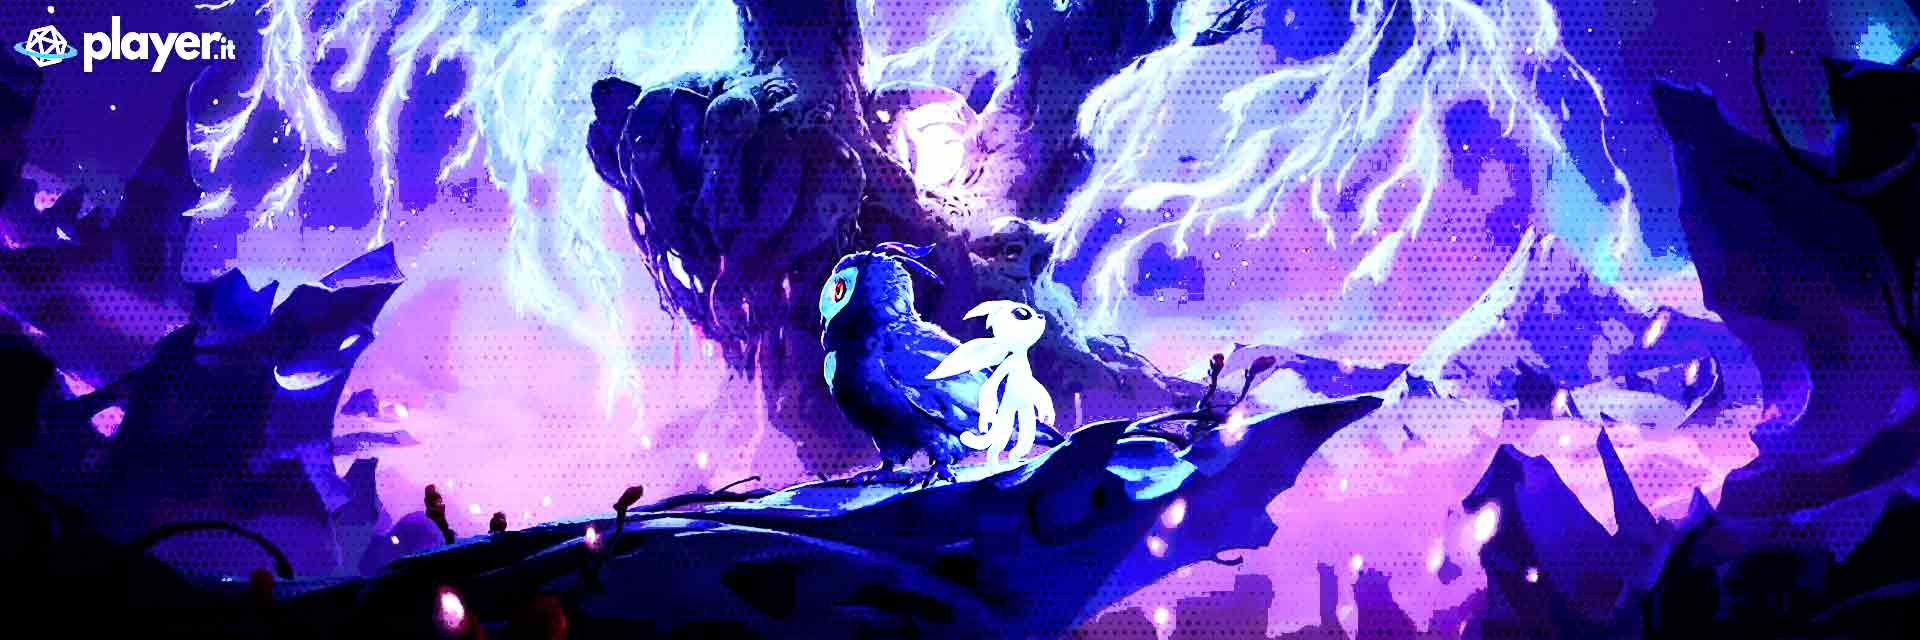 ori and the will of spirits wallpaper in HD